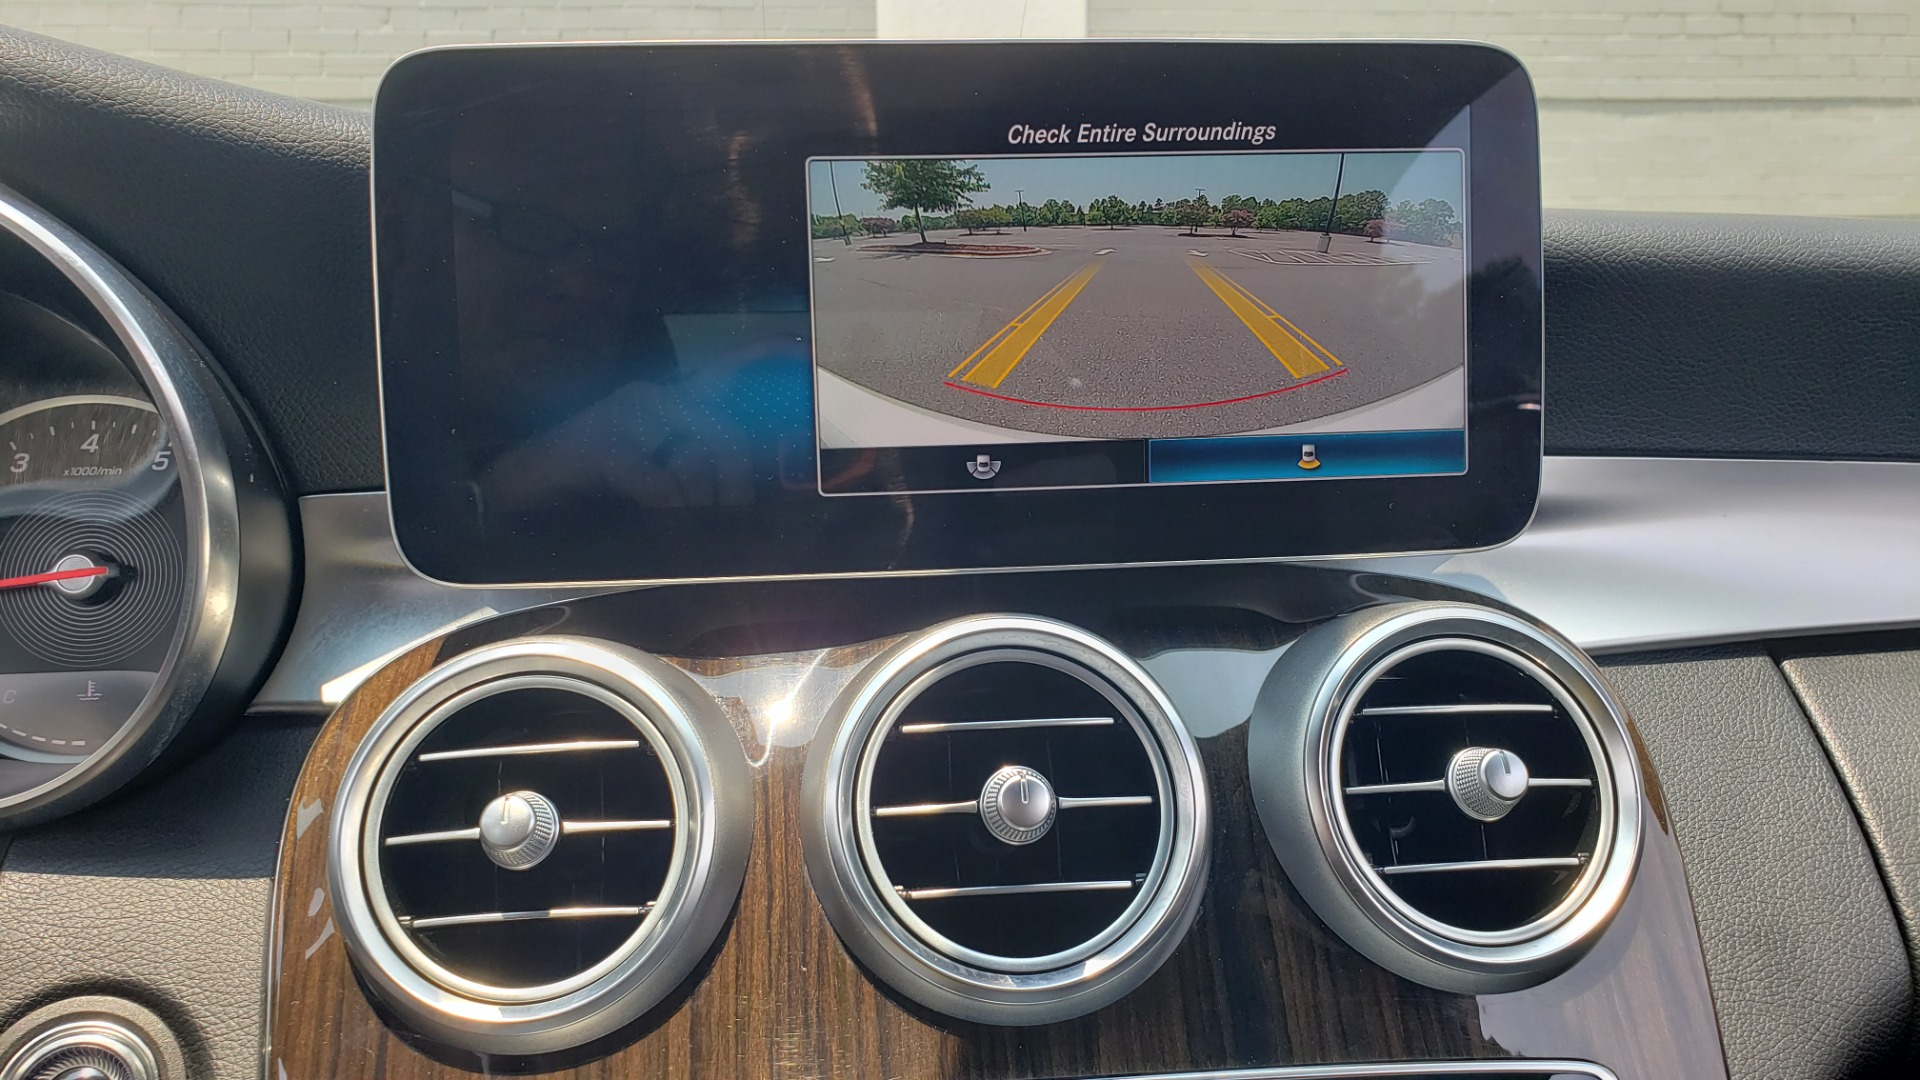 Used 2019 Mercedes-Benz C-CLASS C 300 CABRIOLET 2.0L / AUTO / NAV / HD RADIO / REARVIEW for sale $46,995 at Formula Imports in Charlotte NC 28227 51